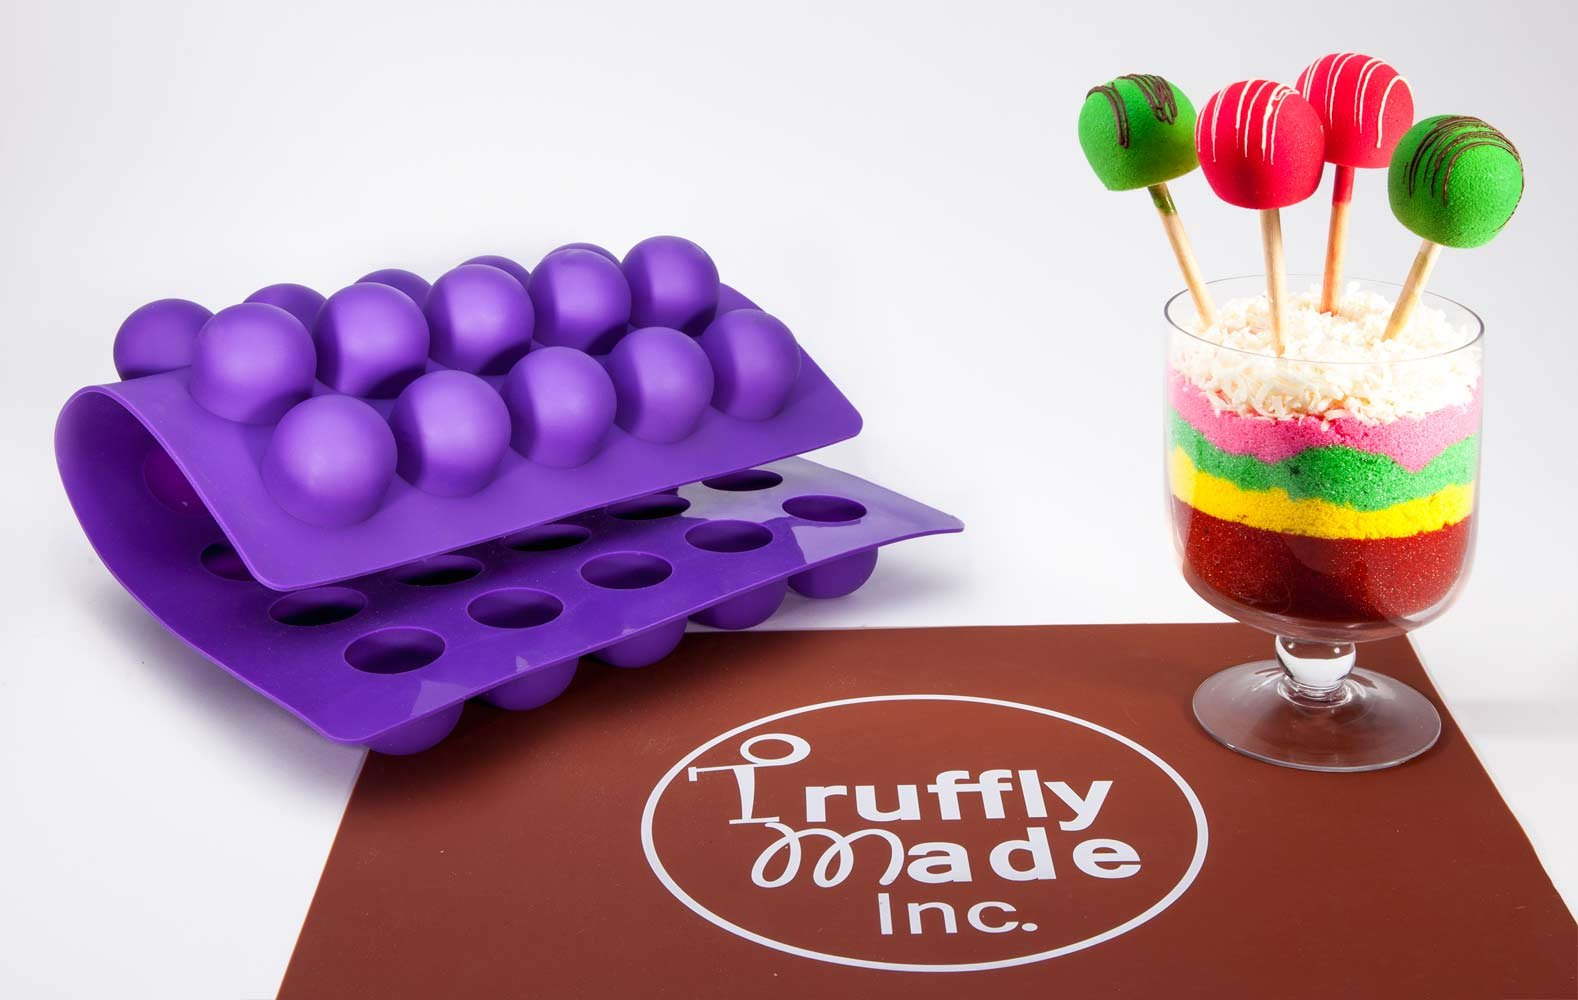 Truffly Made. Big Purple Ice Cream Mold - Sorbet Mold, Mousse Mold, Marshmallow Mold - 35 cavities, One step candy pop-out by Truffly Made (Image #7)